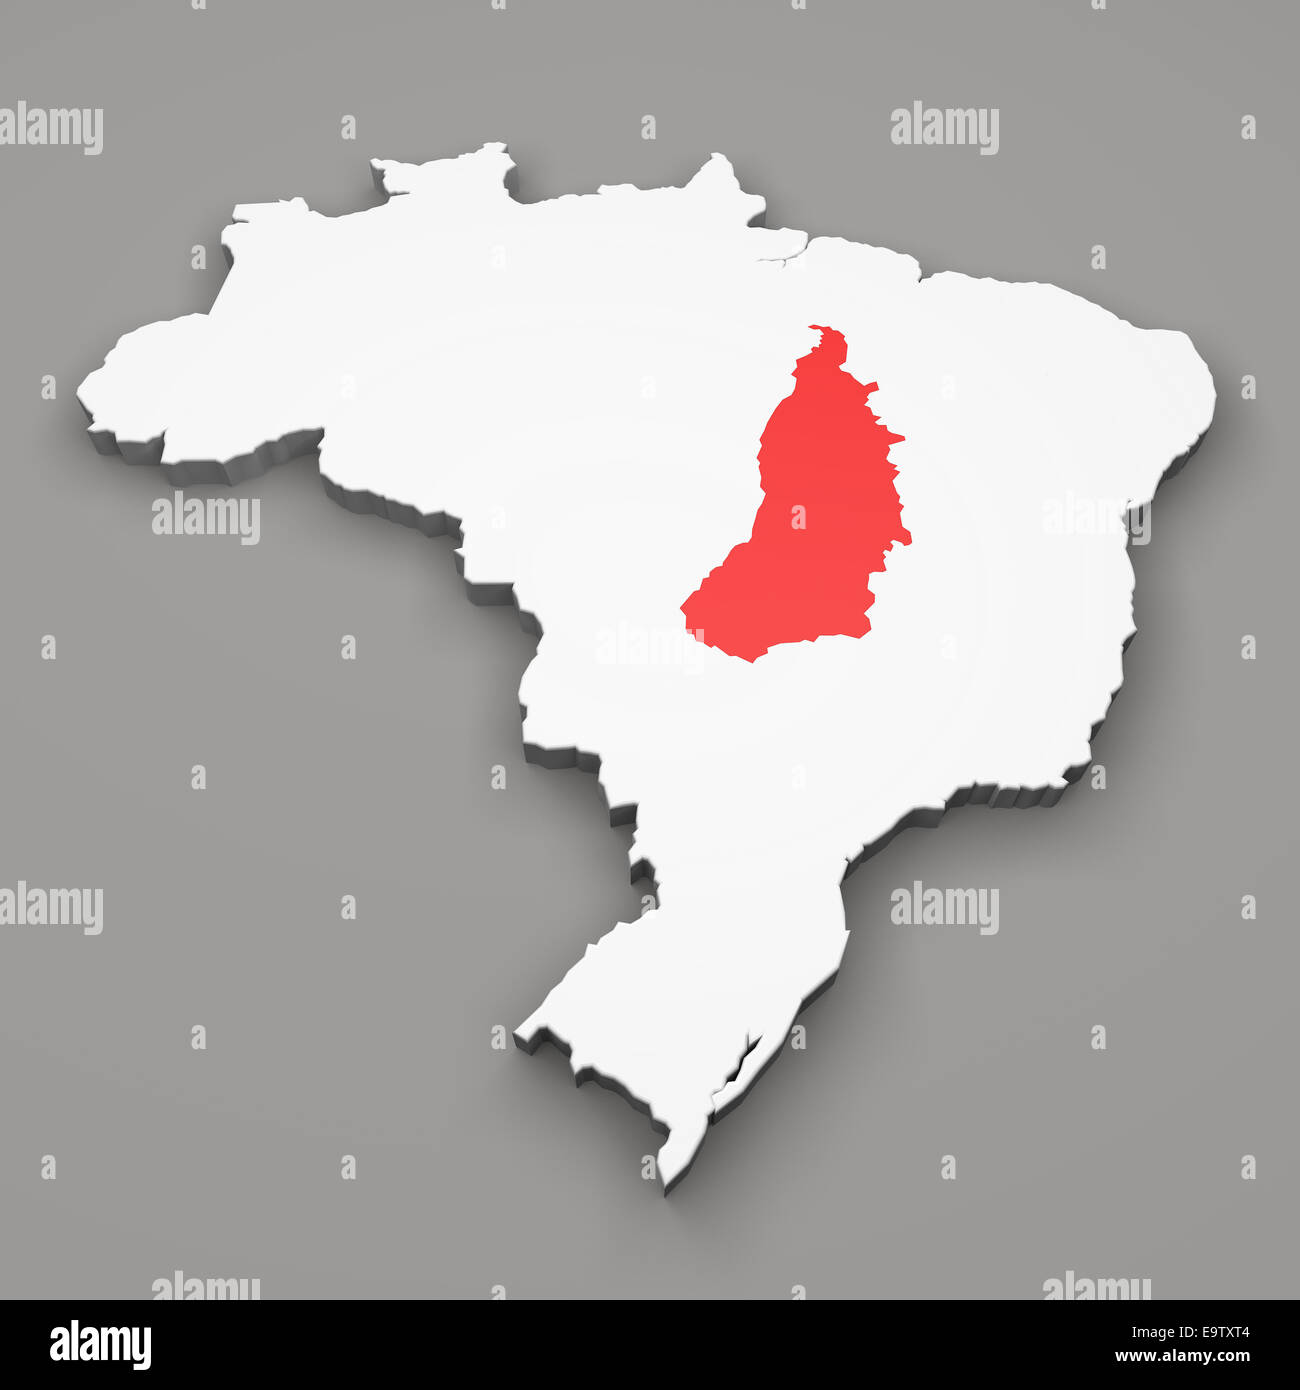 Goias and Tocantis states on map of Brazil on gray background - Stock Image